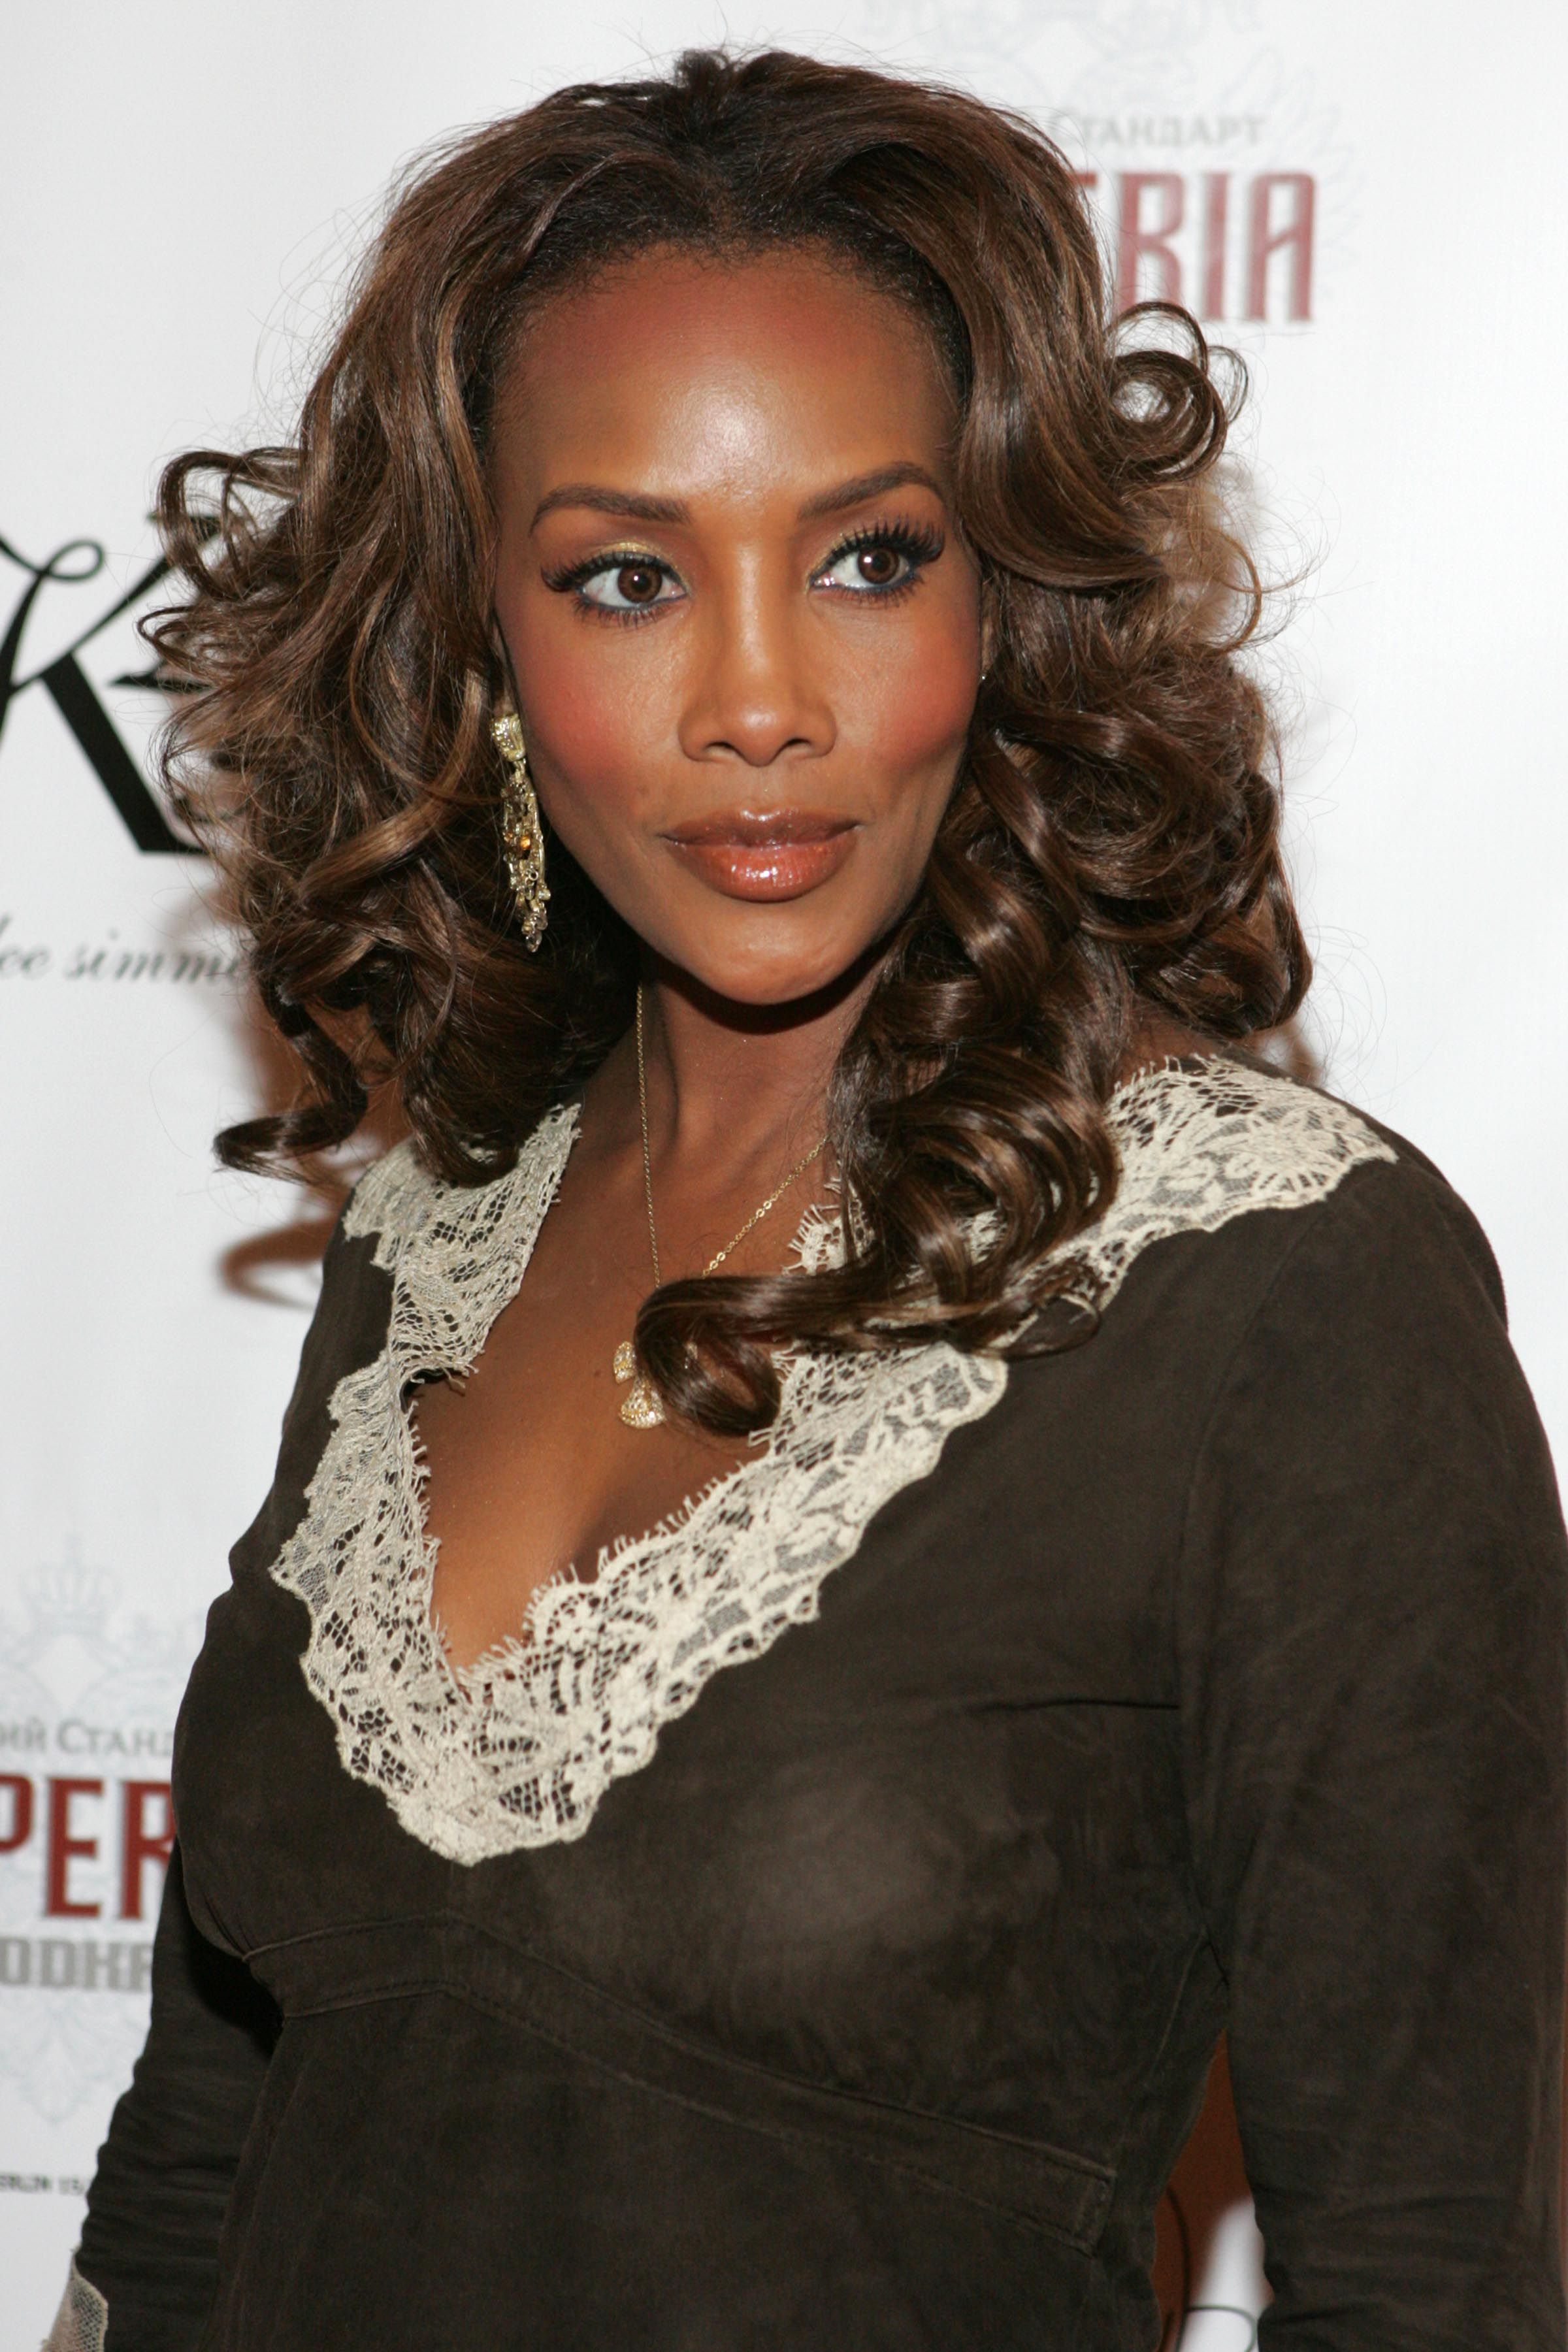 Sexy Vivica A. Fox nudes (58 foto and video), Tits, Leaked, Selfie, legs 2018